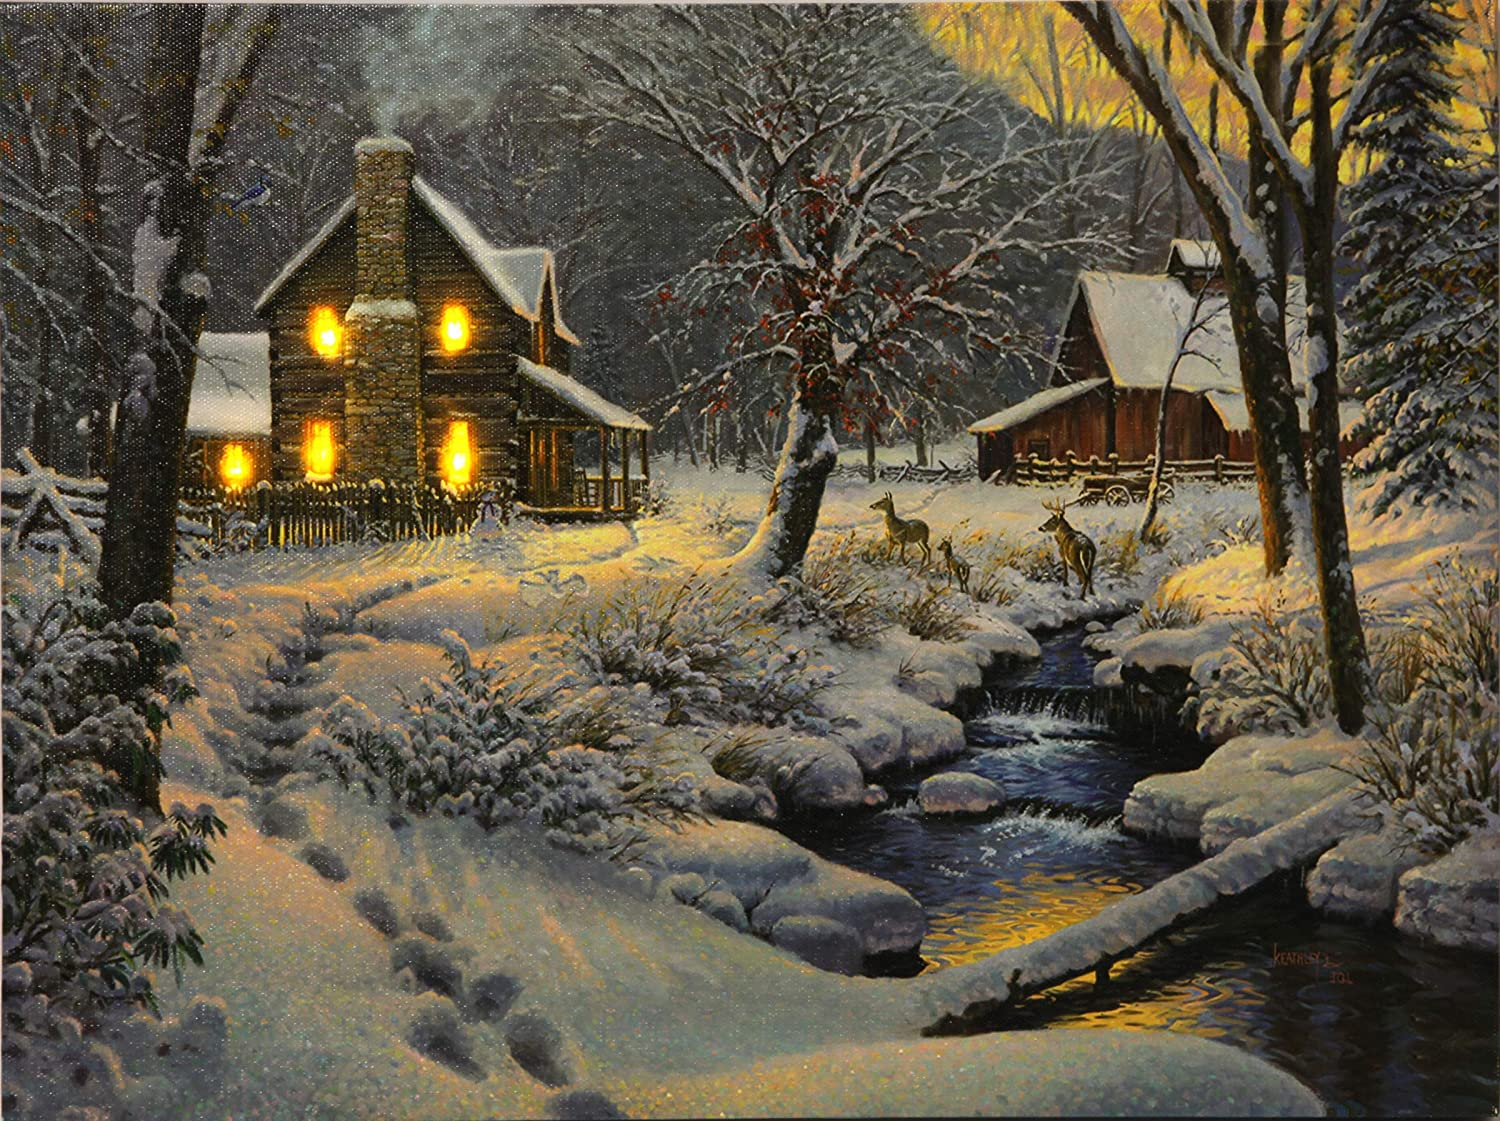 Rivers Edge Products 16 x 12 LED Wall Art Snowy Cabin River' s Edge Products 1768